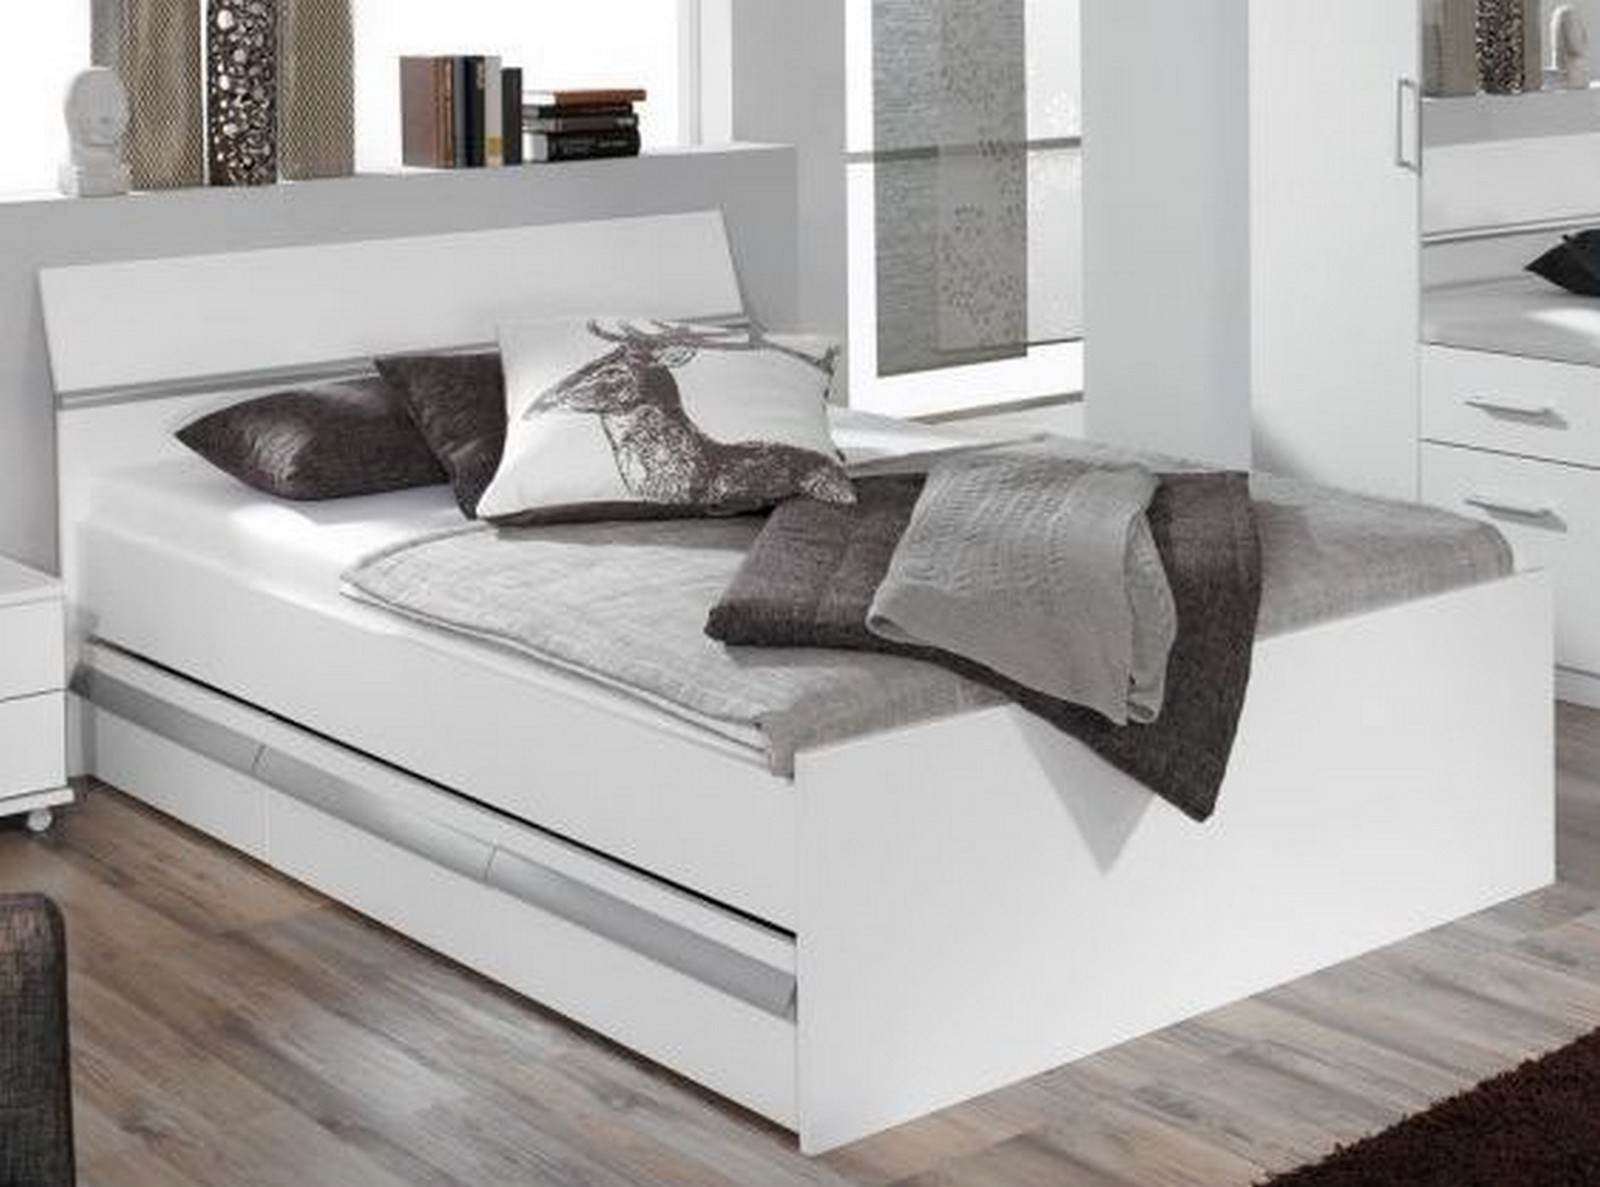 bett 140x200cm bett mit bettkasten komfortbett. Black Bedroom Furniture Sets. Home Design Ideas